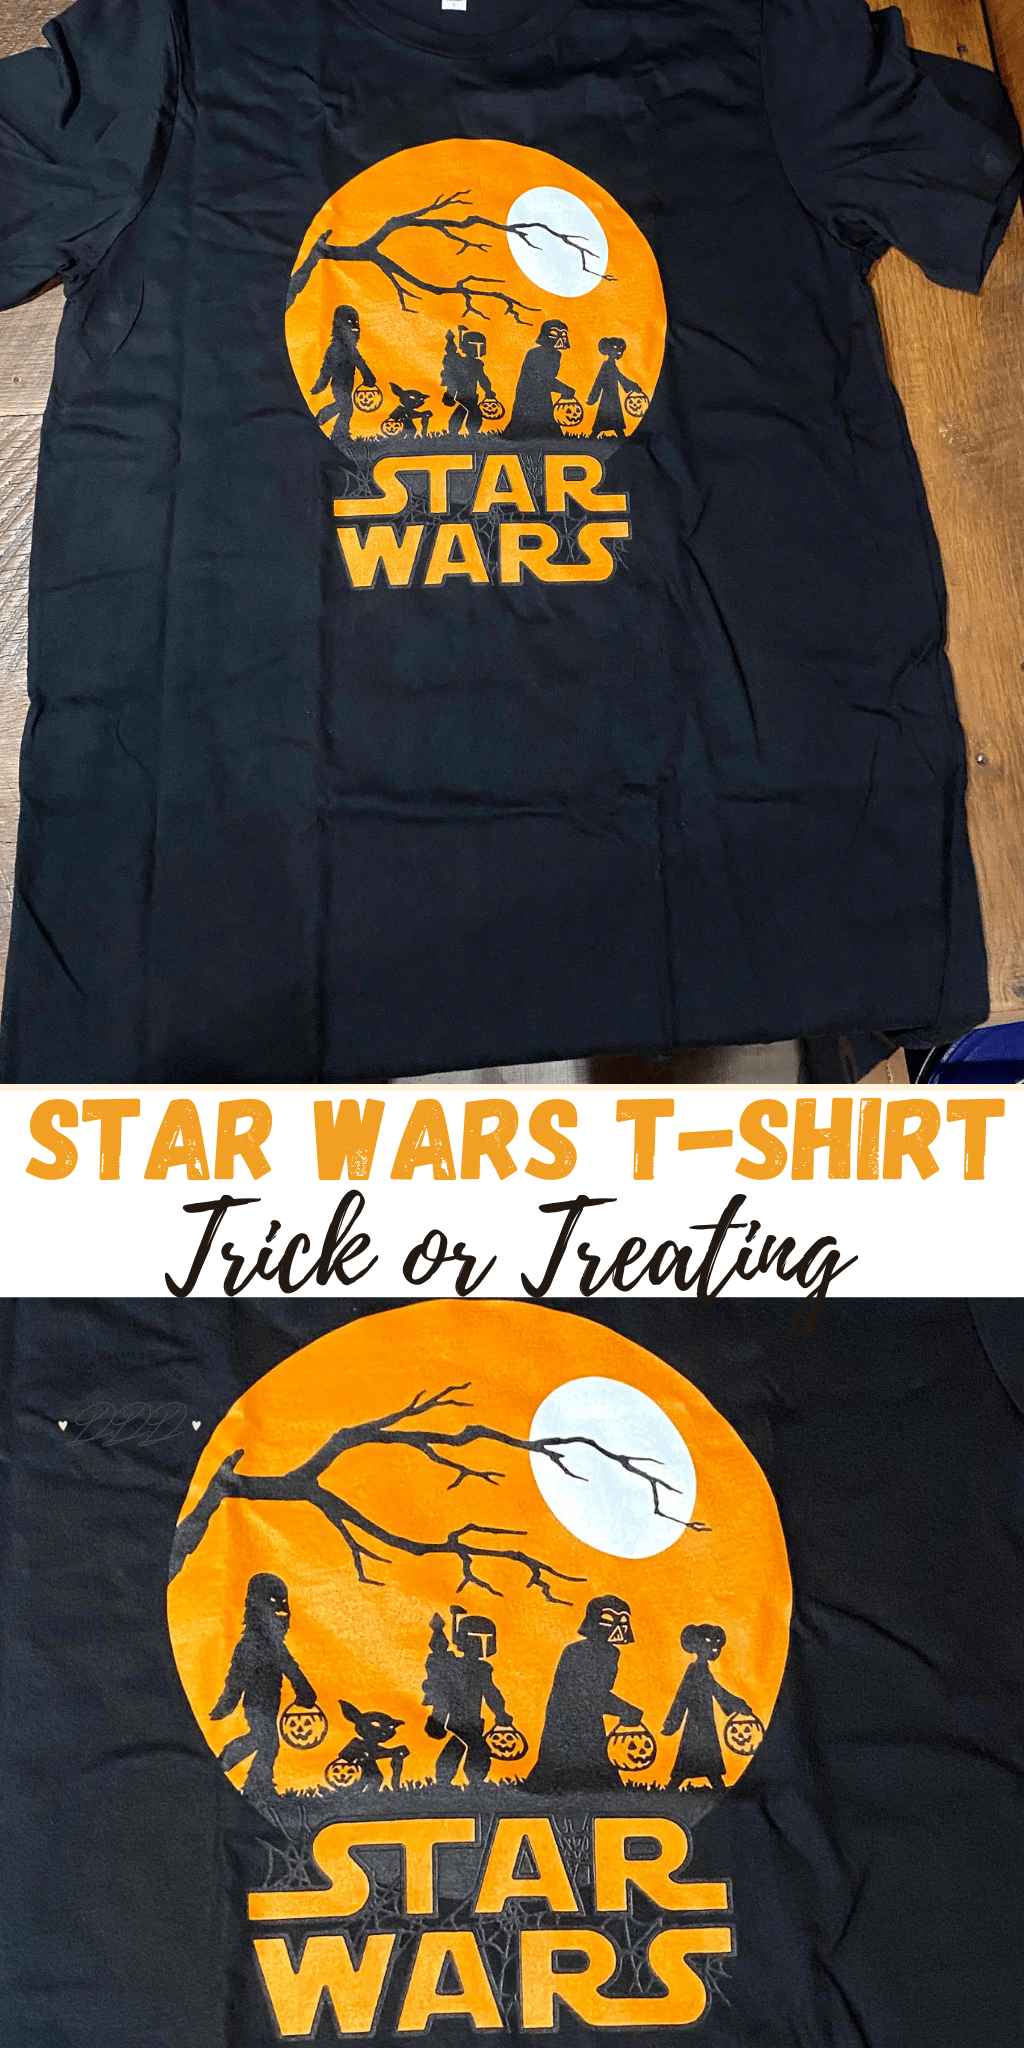 Star Wars T-shirt for Halloween